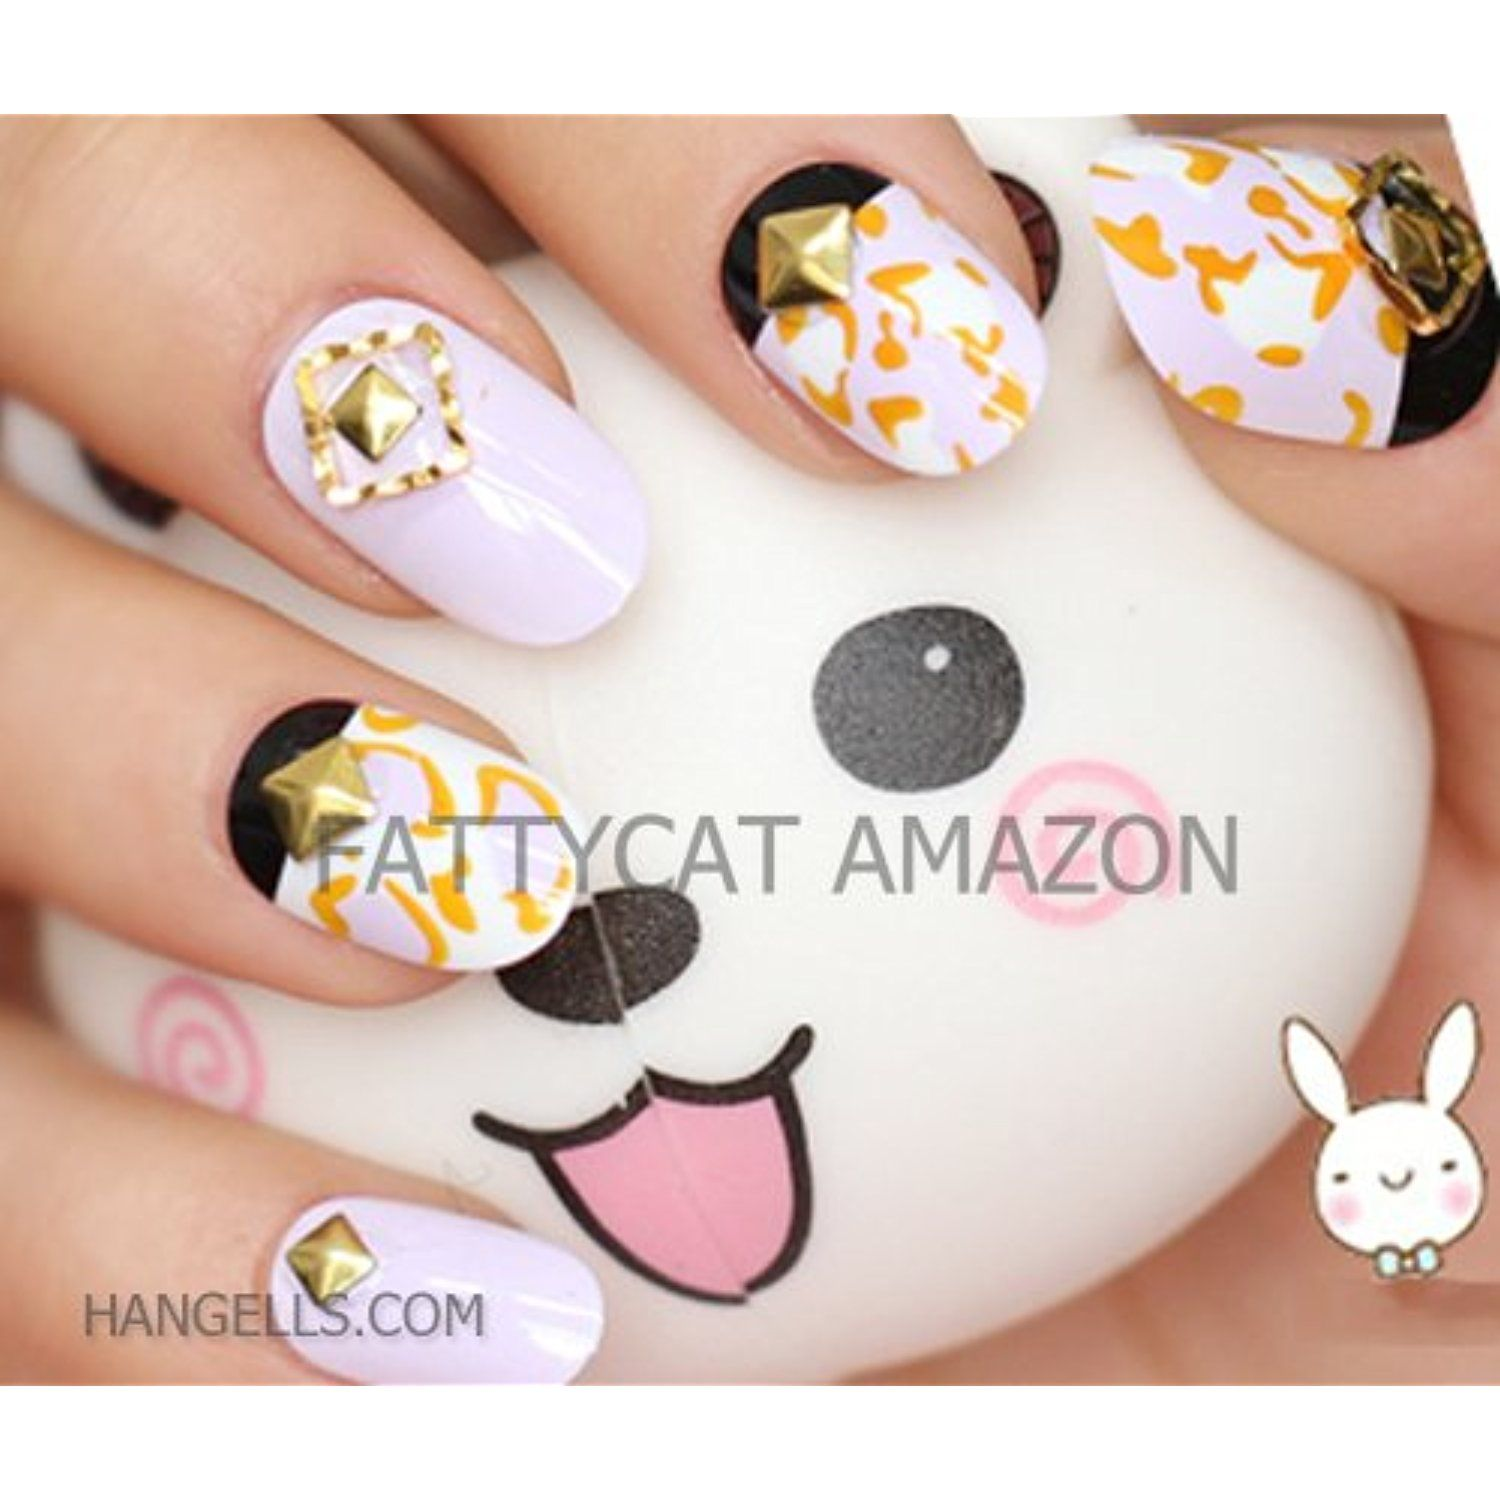 FASHION JAPANESE 3D NAIL ART (JASMINE GARDEN) 24 nails Sold By ...